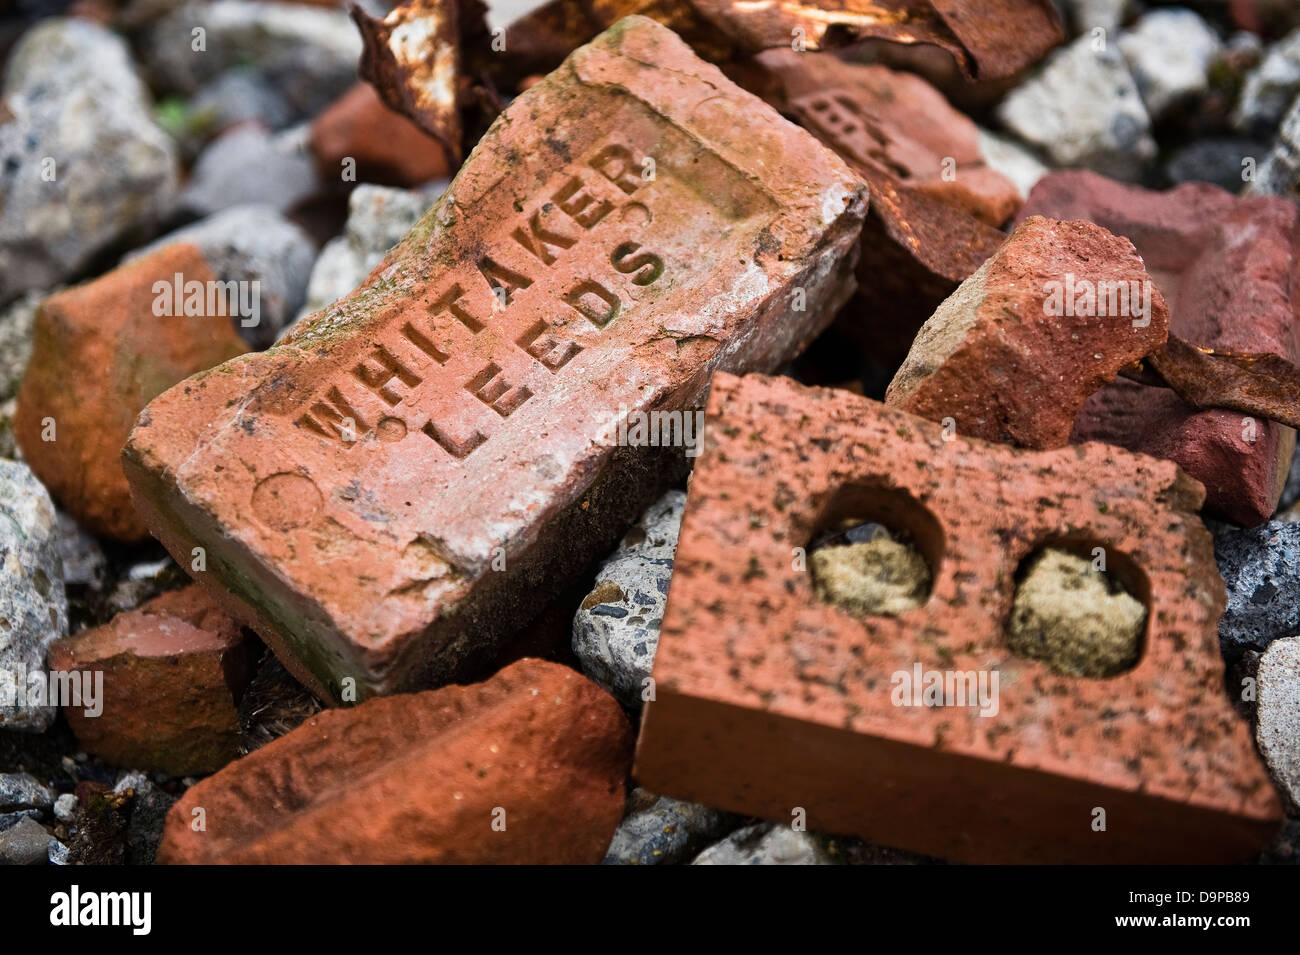 Breaks made by Whitaker Leeds for the former Cookridge Hospital, Silk Mill Way, Cookridge, Leeds, West Yorkshire, - Stock Image